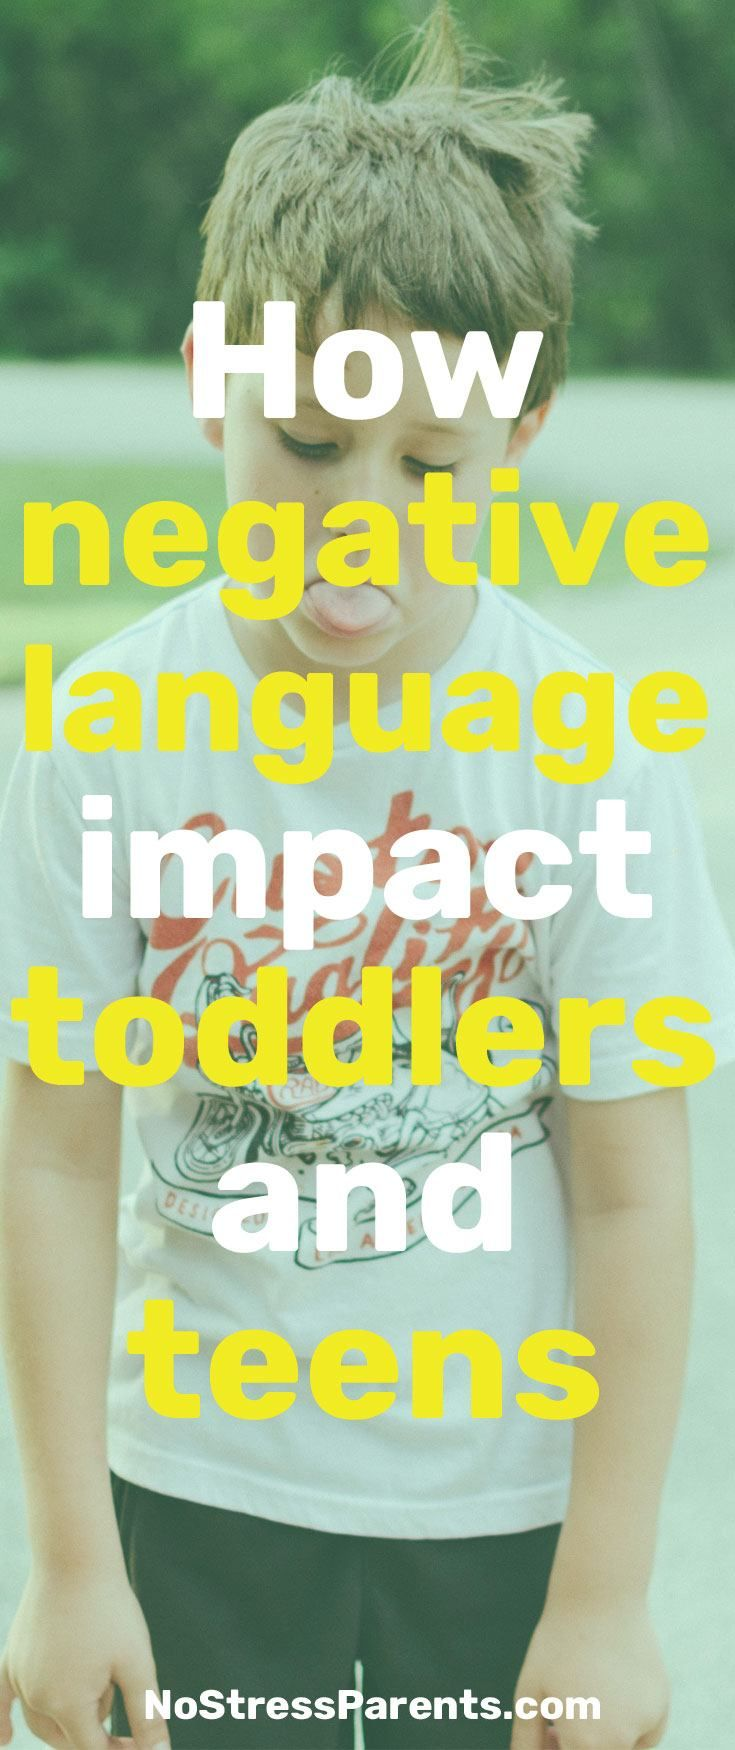 Positive Parenting: How negative language impact toddlers and teens